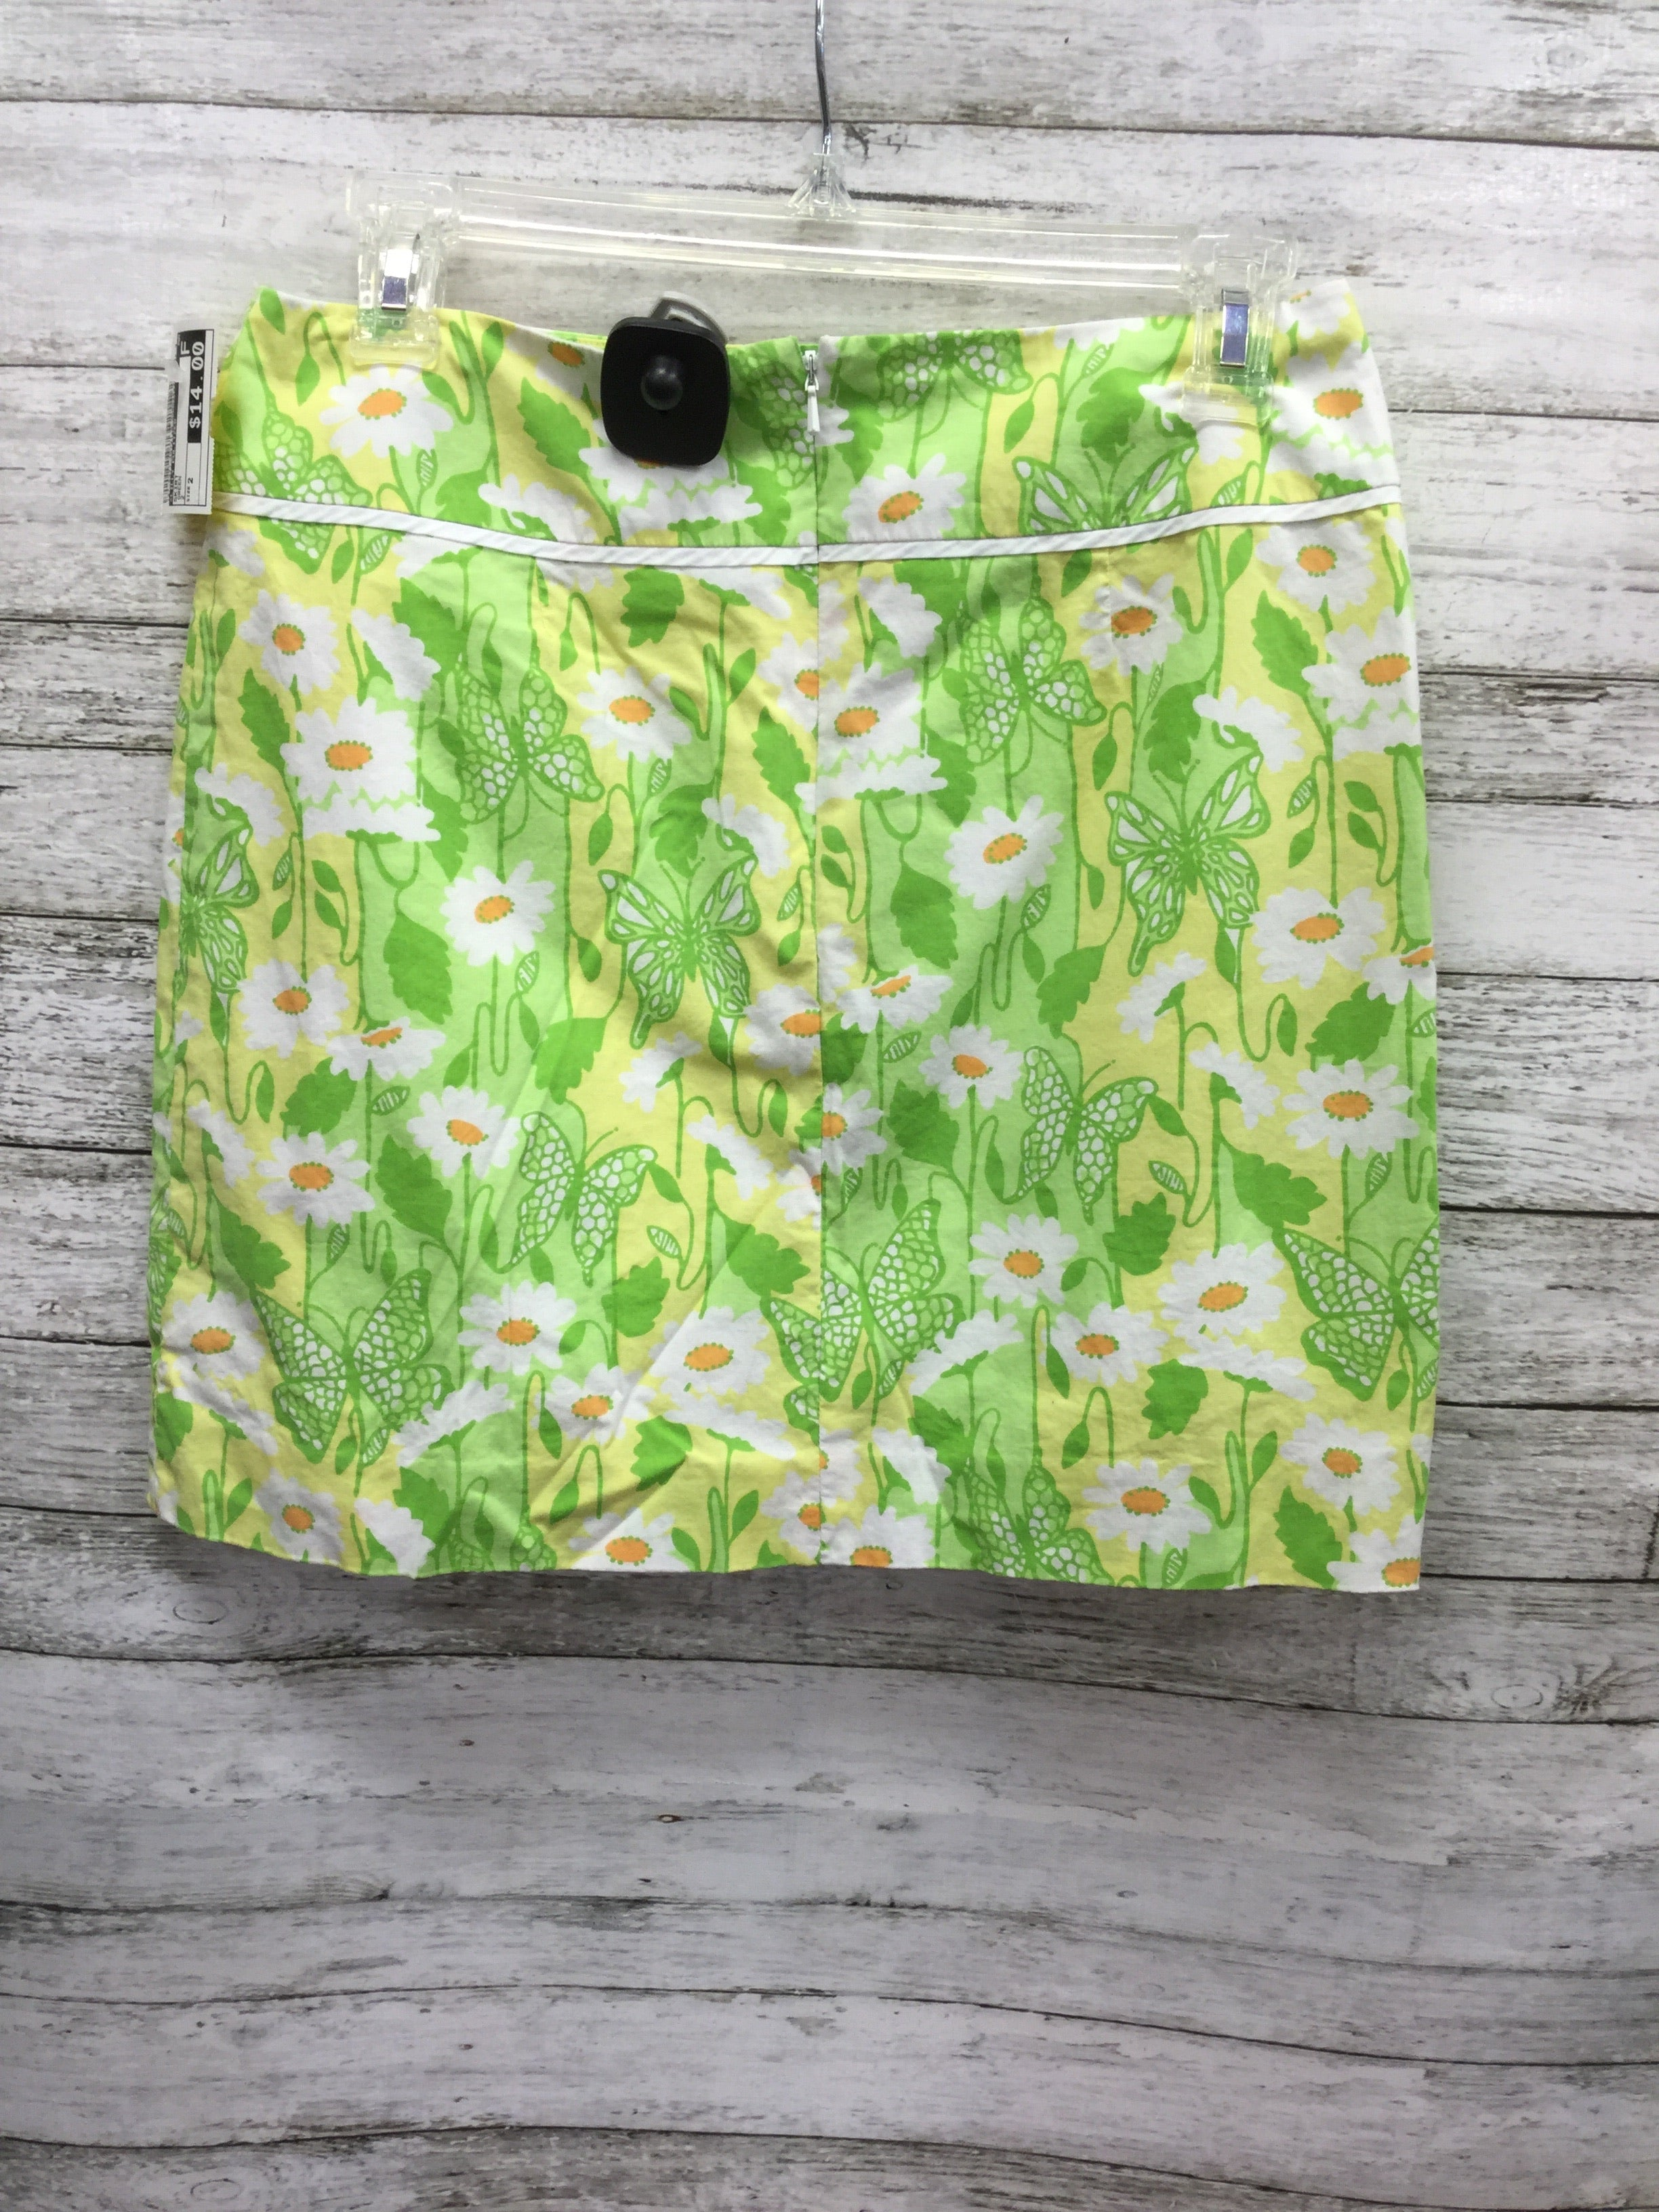 Photo #1 - BRAND: LILLY PULITZER , STYLE: SKIRT , COLOR: GREEN , SIZE: 2 , SKU: 127-3371-45721, , LILLY PULITZER SKIRT IN THE CUTEST PASTEL GREEN, YELLOW, ORANGE AND WHITE PRINT WITH FLOWERS AND BUTTERFLIES! FEATURES WHITE TRIM AND BOW DETAIL.